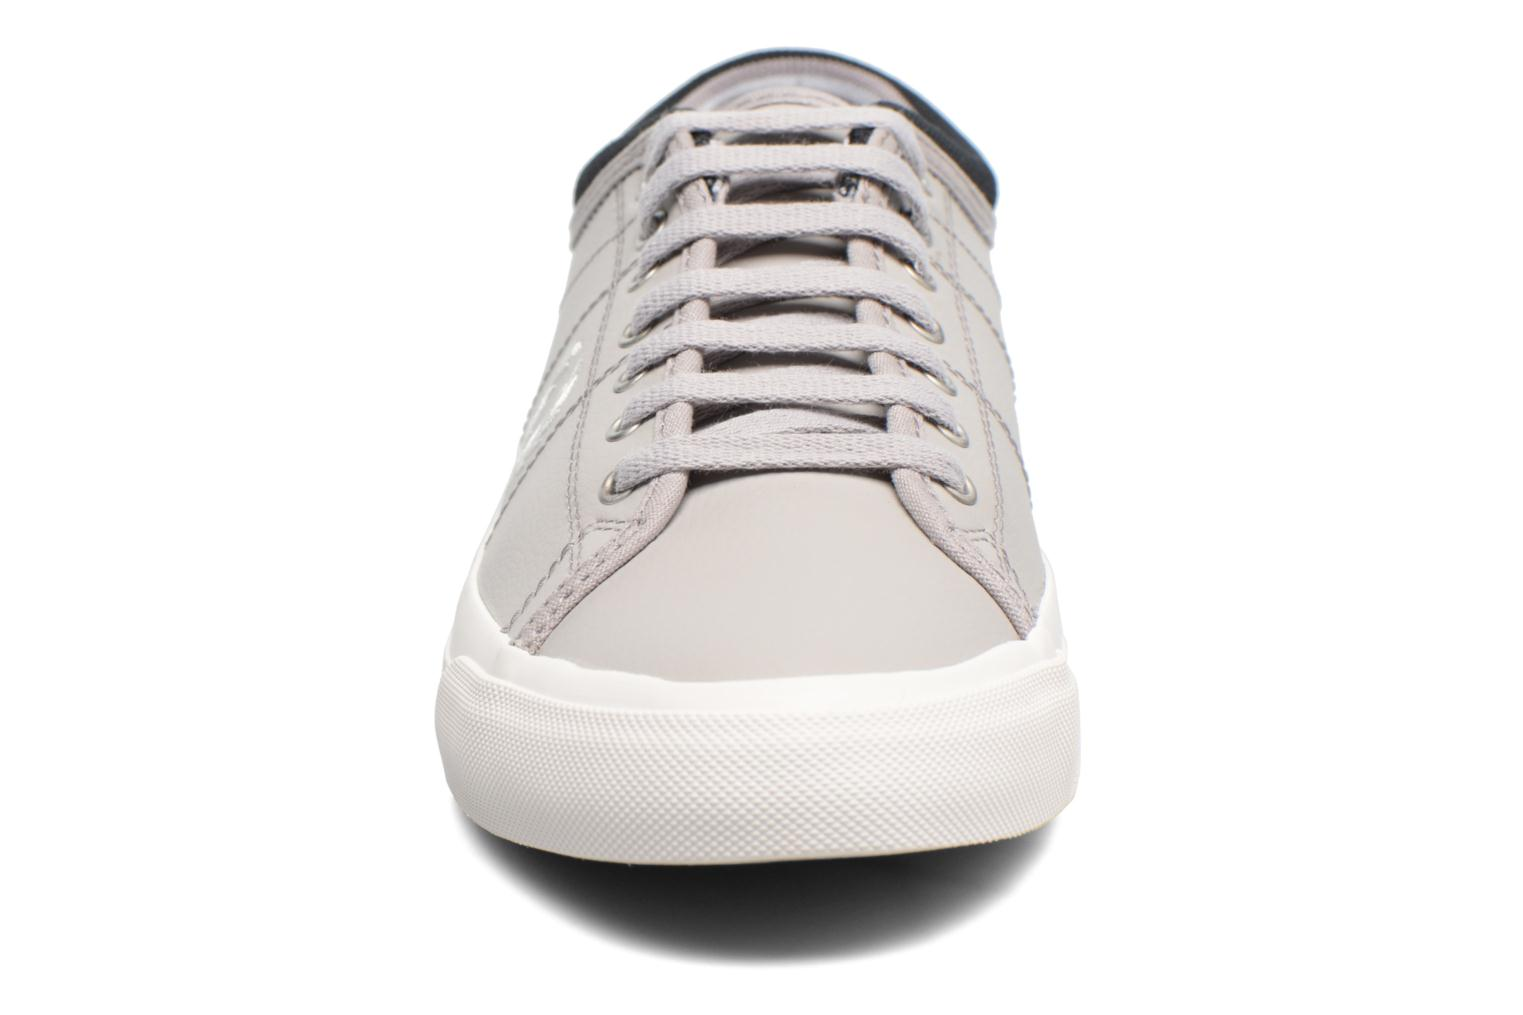 Baskets Fred Perry Kendrick Reversed Tipped Cuff Leather Gris vue portées chaussures